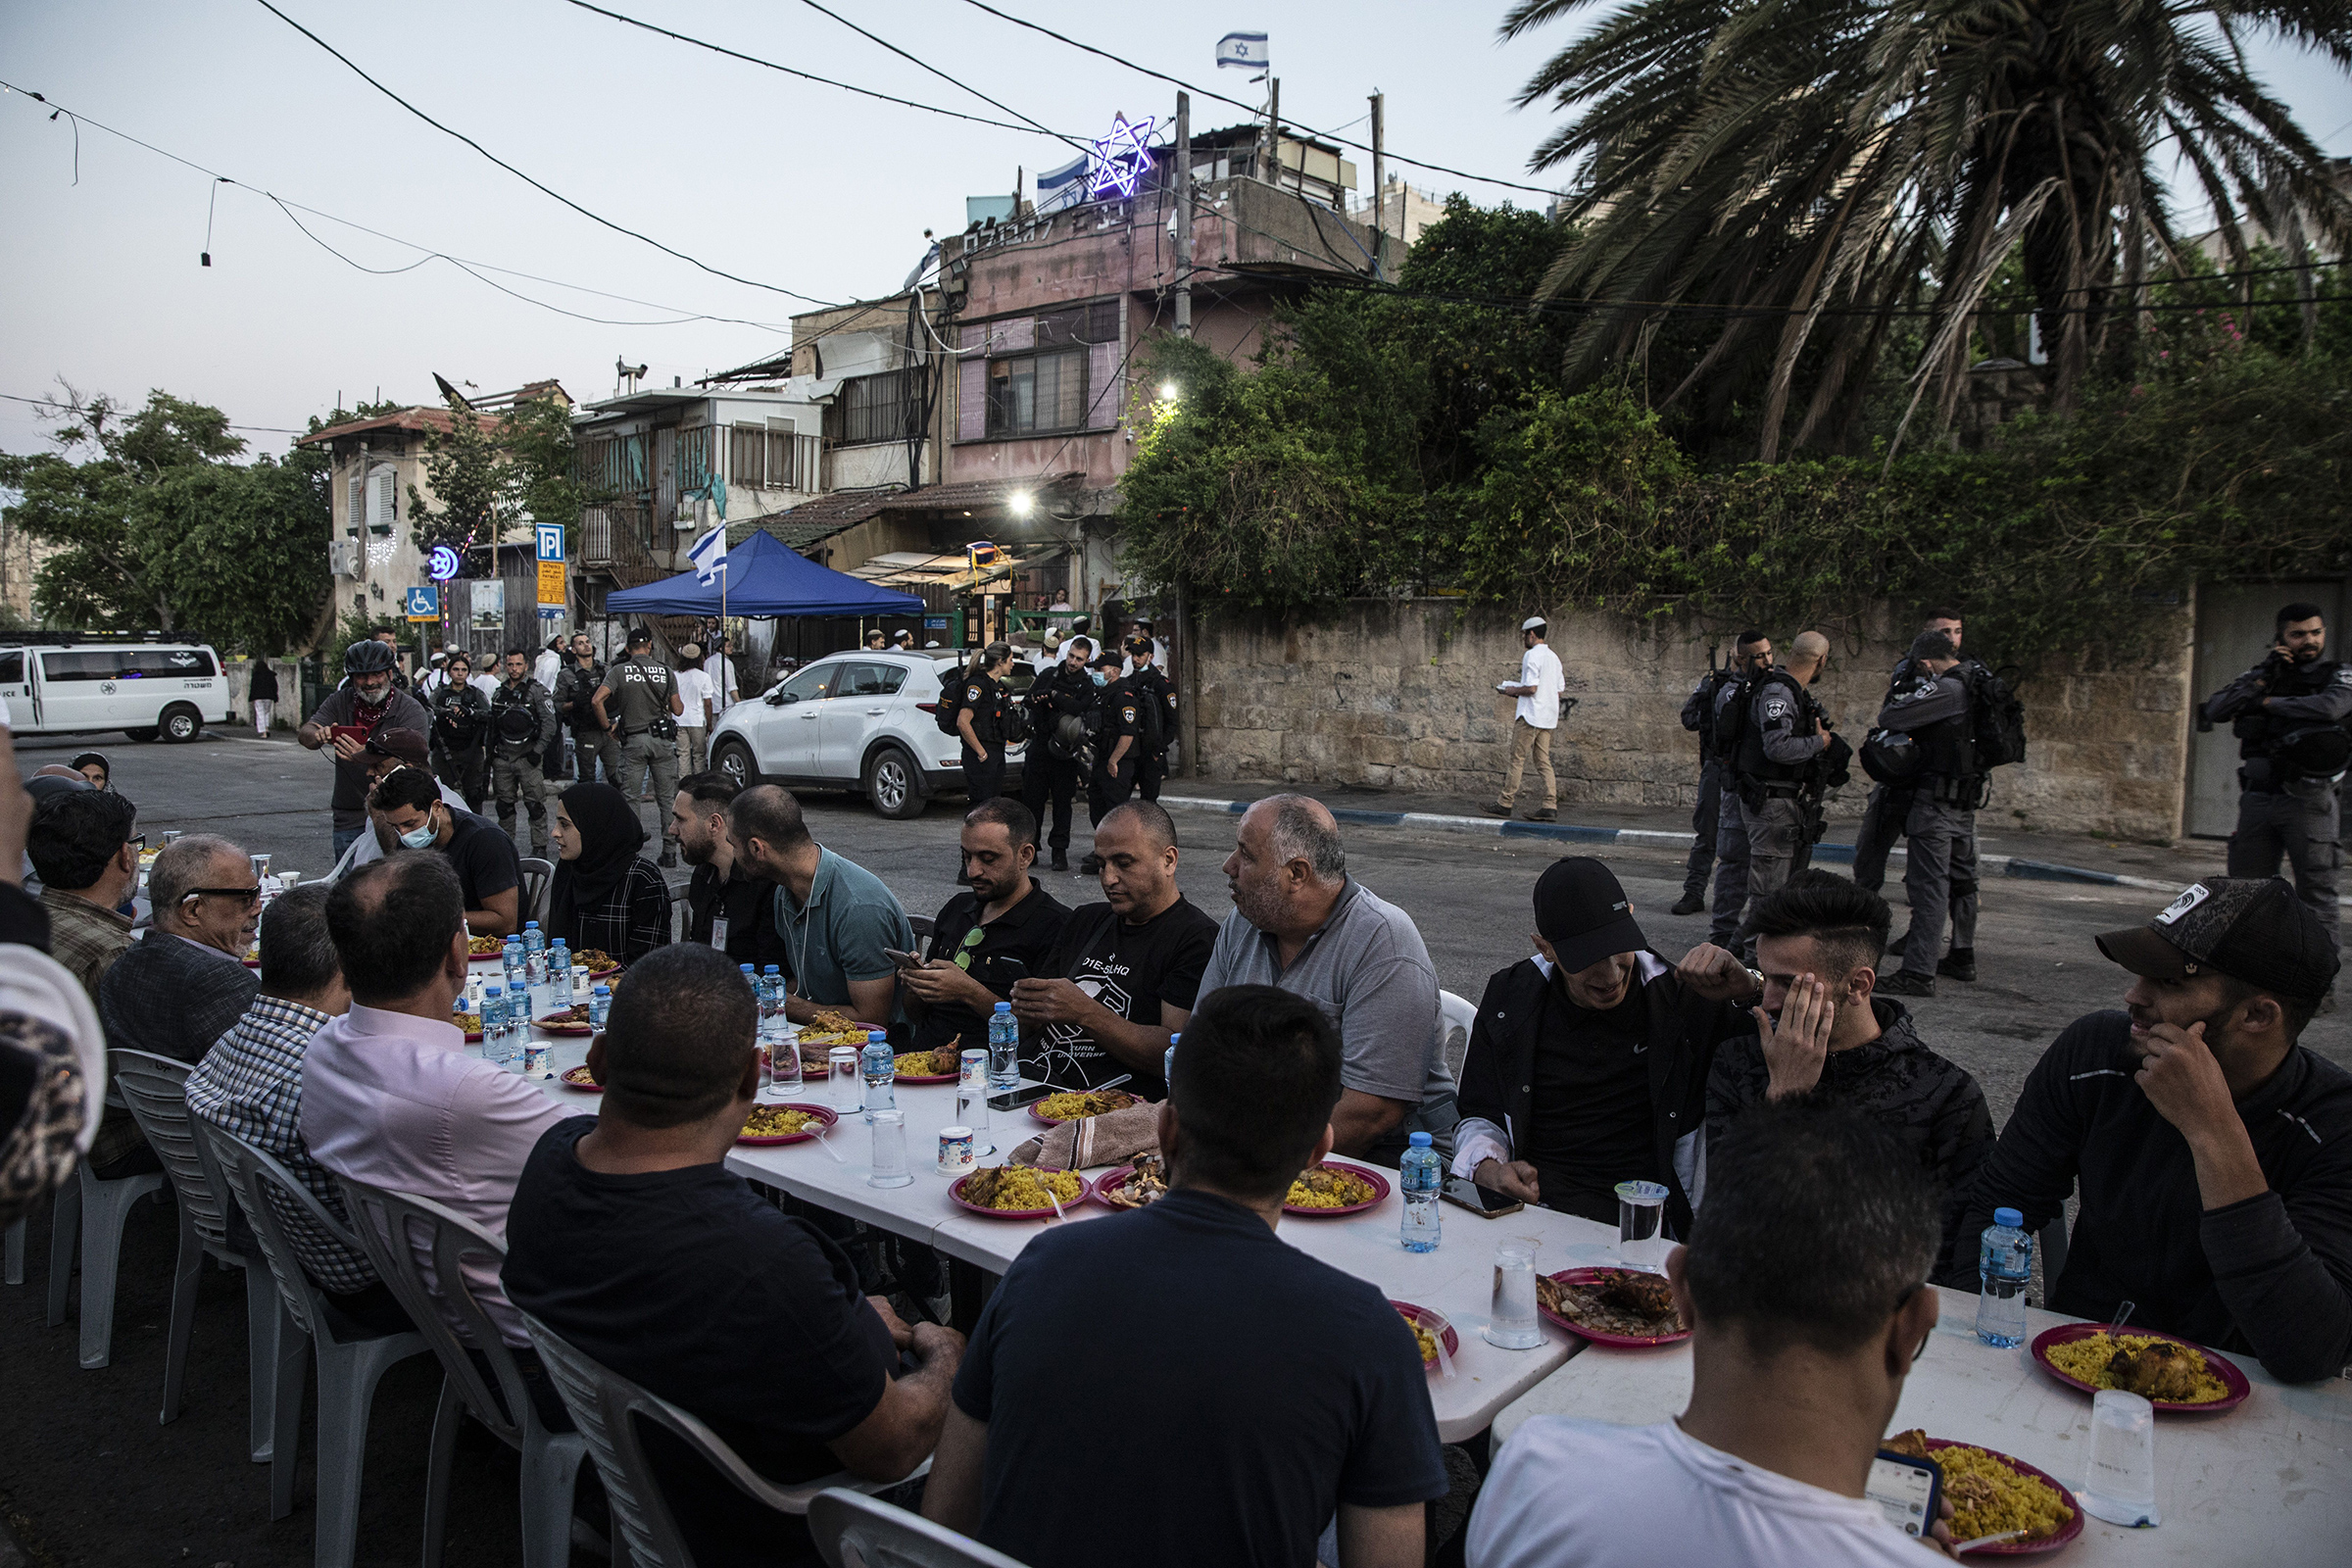 Palestinians sit at a large table to break the fast during Ramadan as Israeli border police guard Jewish settlers, outside one of the homes they have taken over from a Palestinian family and near other homes of Palestinians facing eviction, in the East Jerusalem neighborhood of Sheikh Jarrah on May 7, 2021.